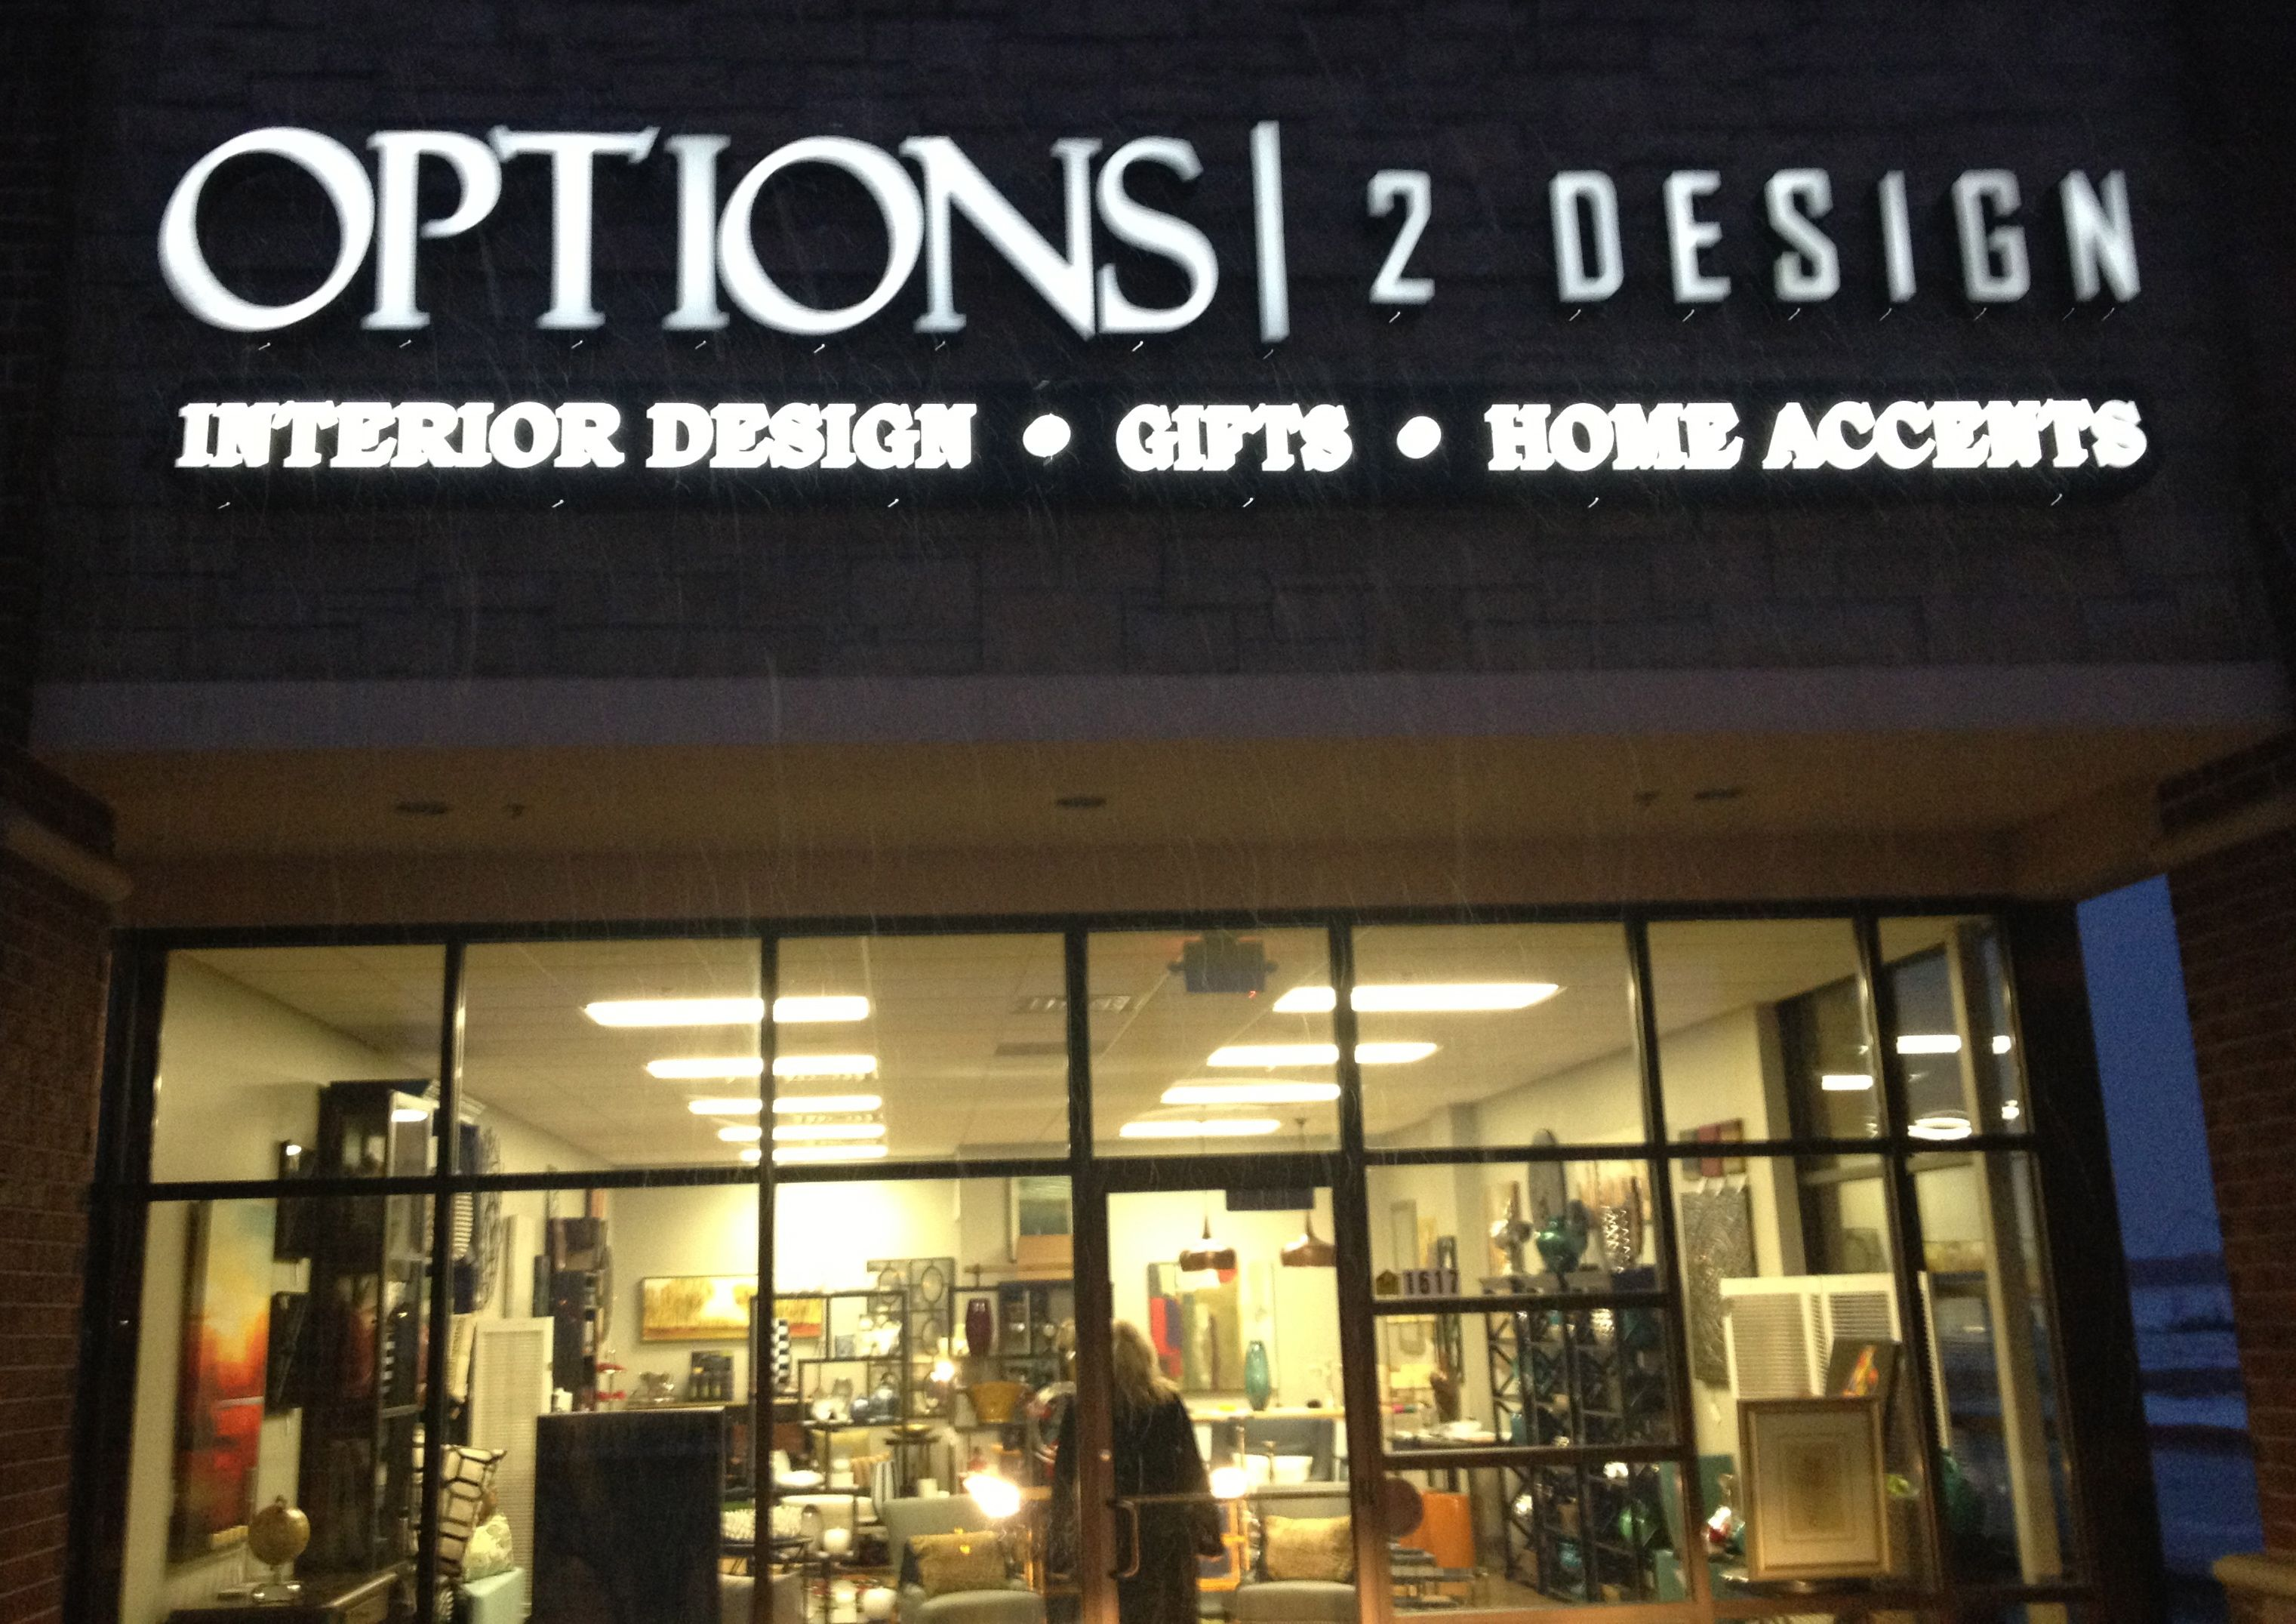 Options 2 Design Interior Firm Offering Artwork Home Accessories Rugs And The Solution To Your Dilemmas 1617 W St Edmond OK 73013